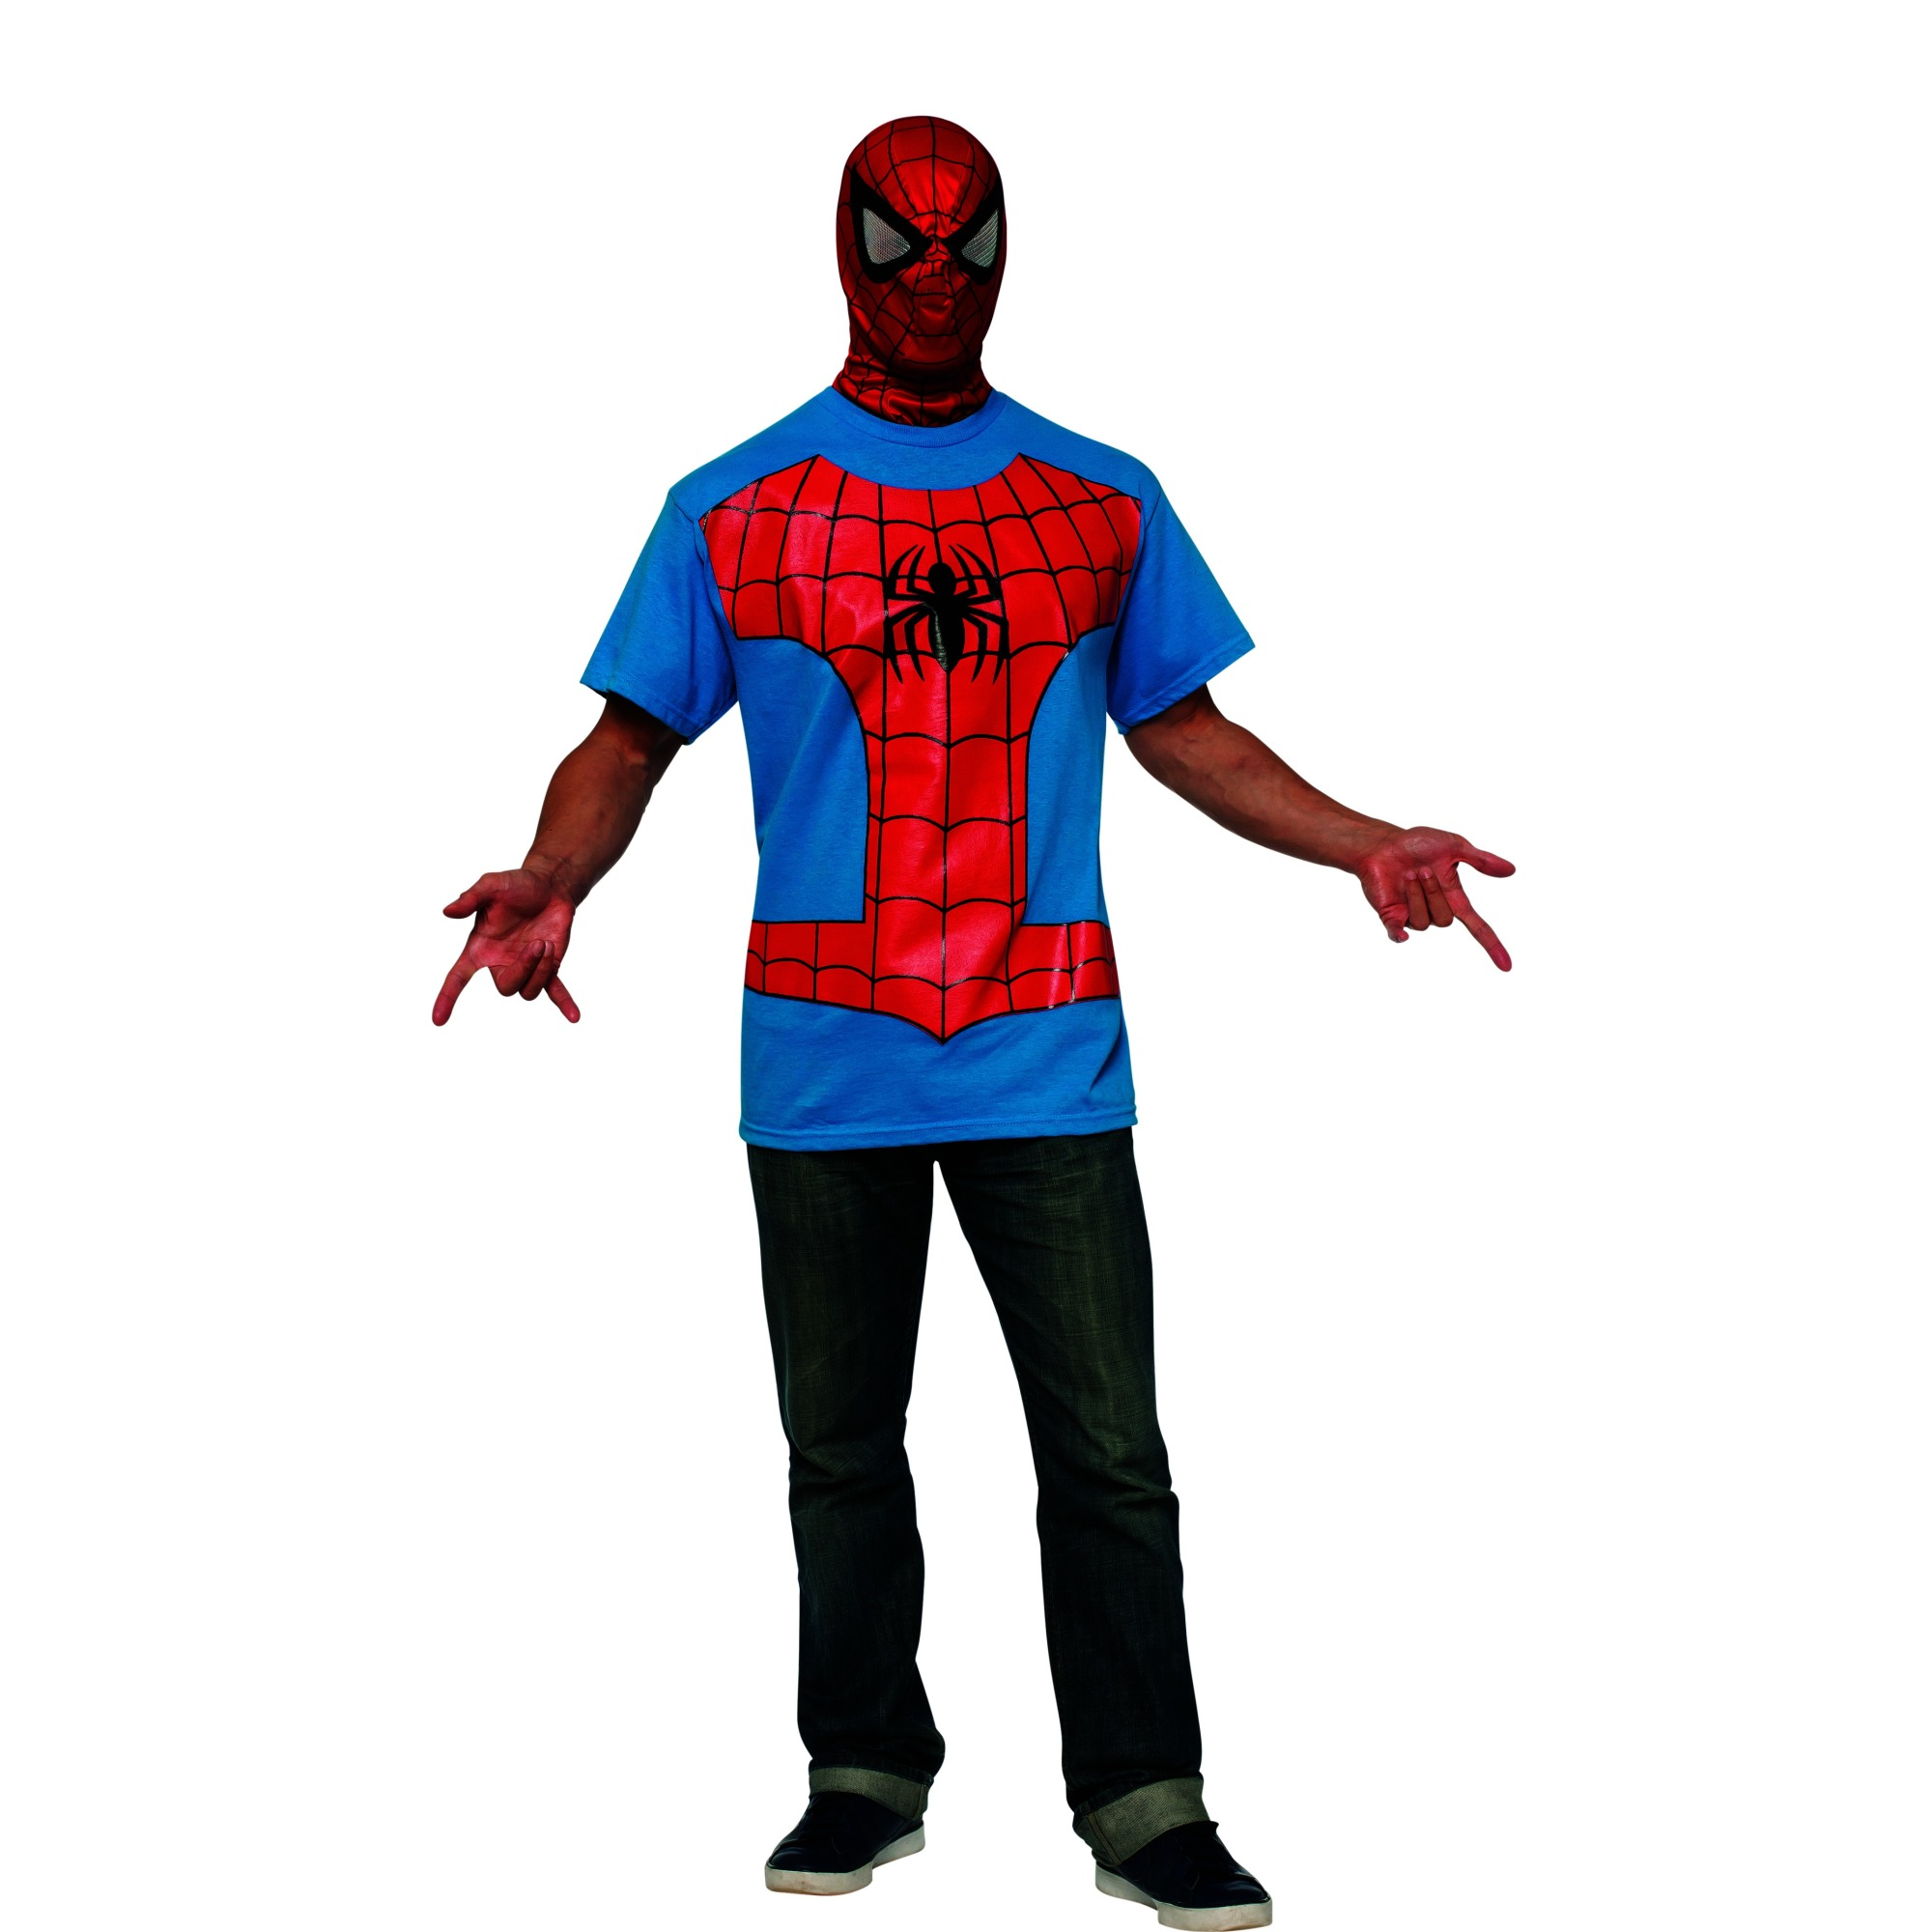 Marvel Classic Spider-Man Adult T-Shirt Kit Men's Adult Halloween Costume